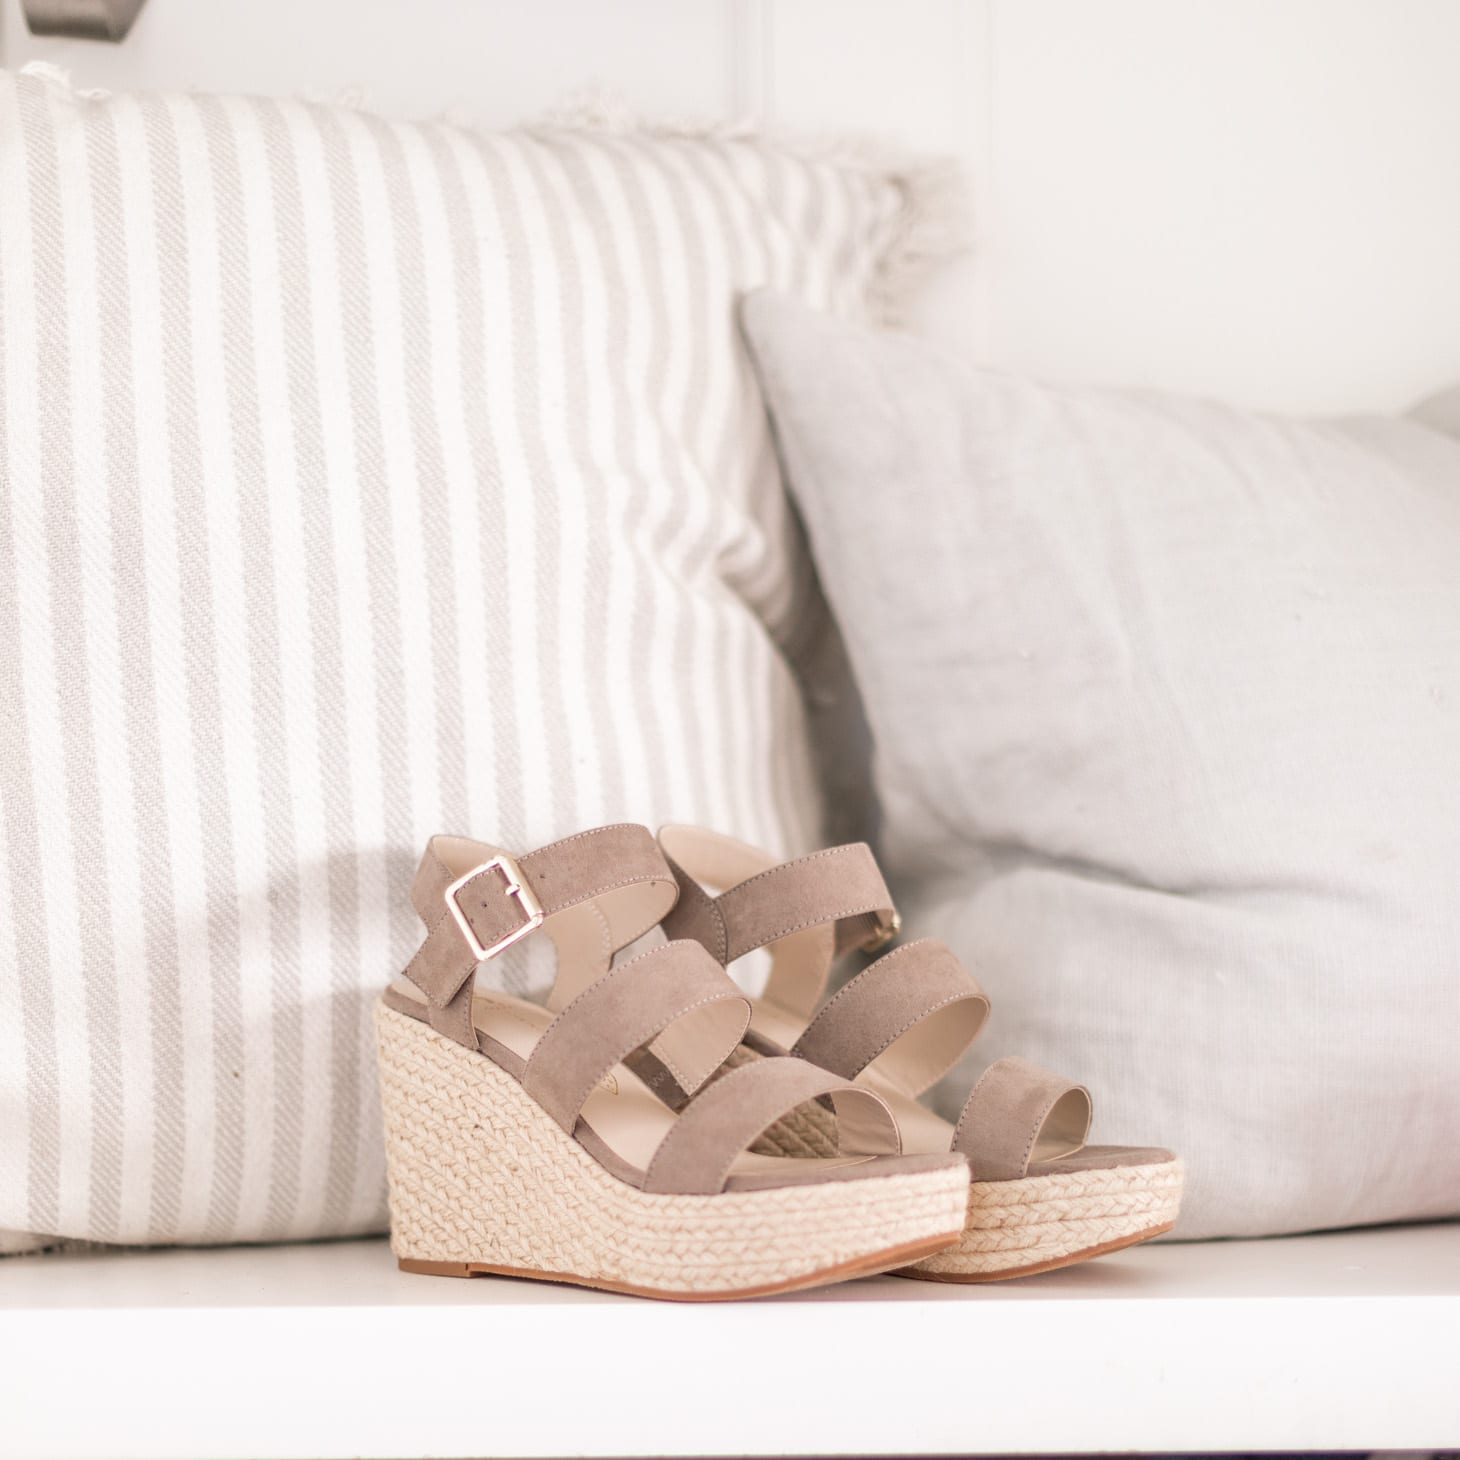 Jillian Harris must-have shoes picks from the Nordstrom Anniversary Sale